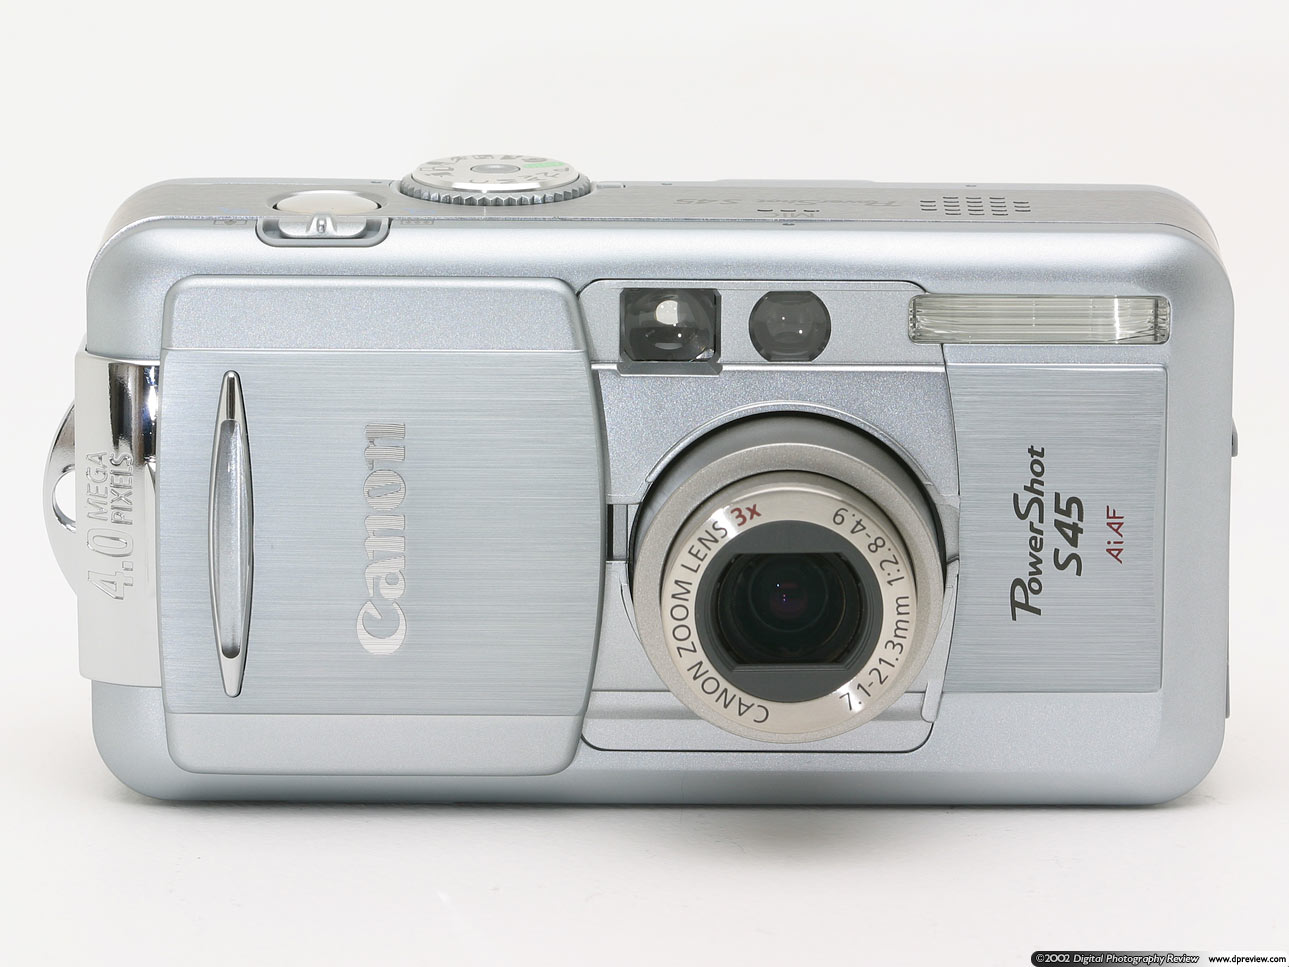 CANON S45 WINDOWS 8 X64 TREIBER